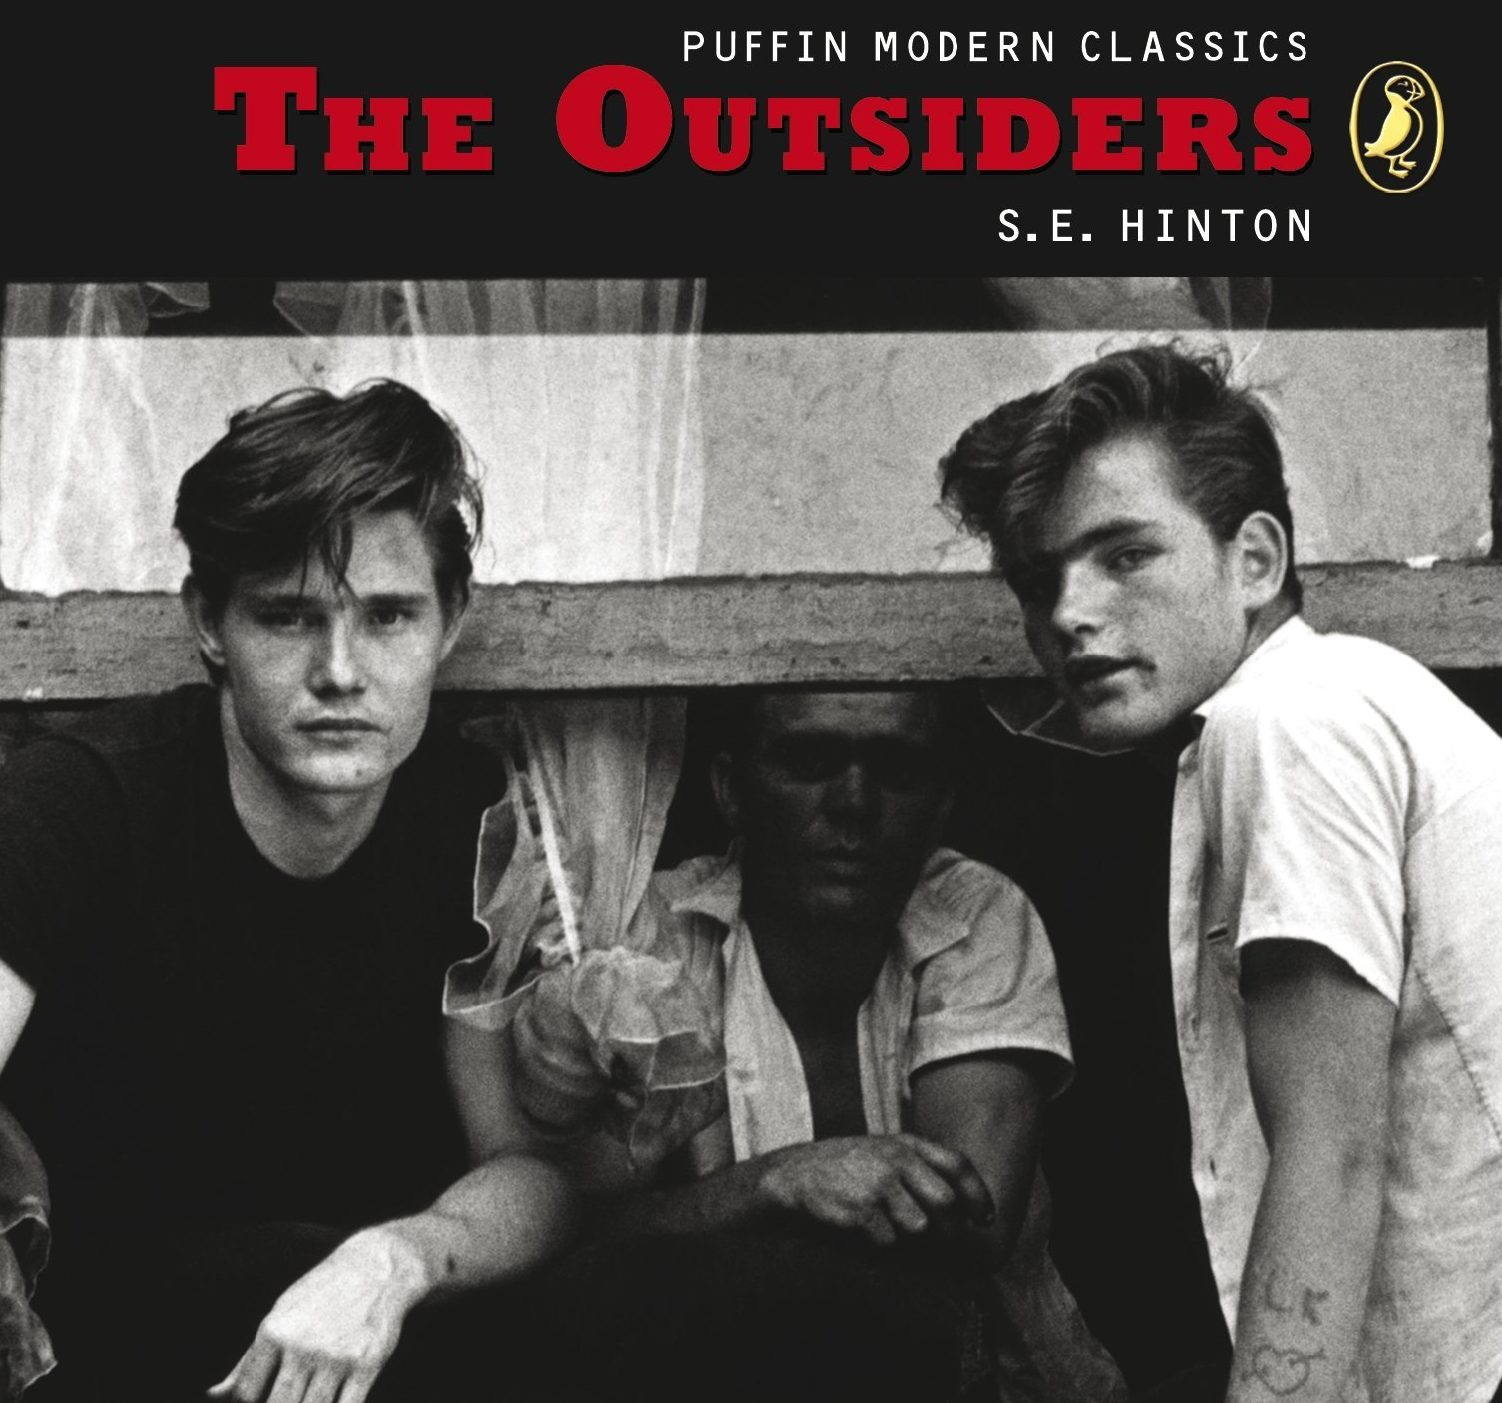 81GWpnkovUL e1610628175347 20 Things You Probably Didn't Know About The 1983 Film The Outsiders